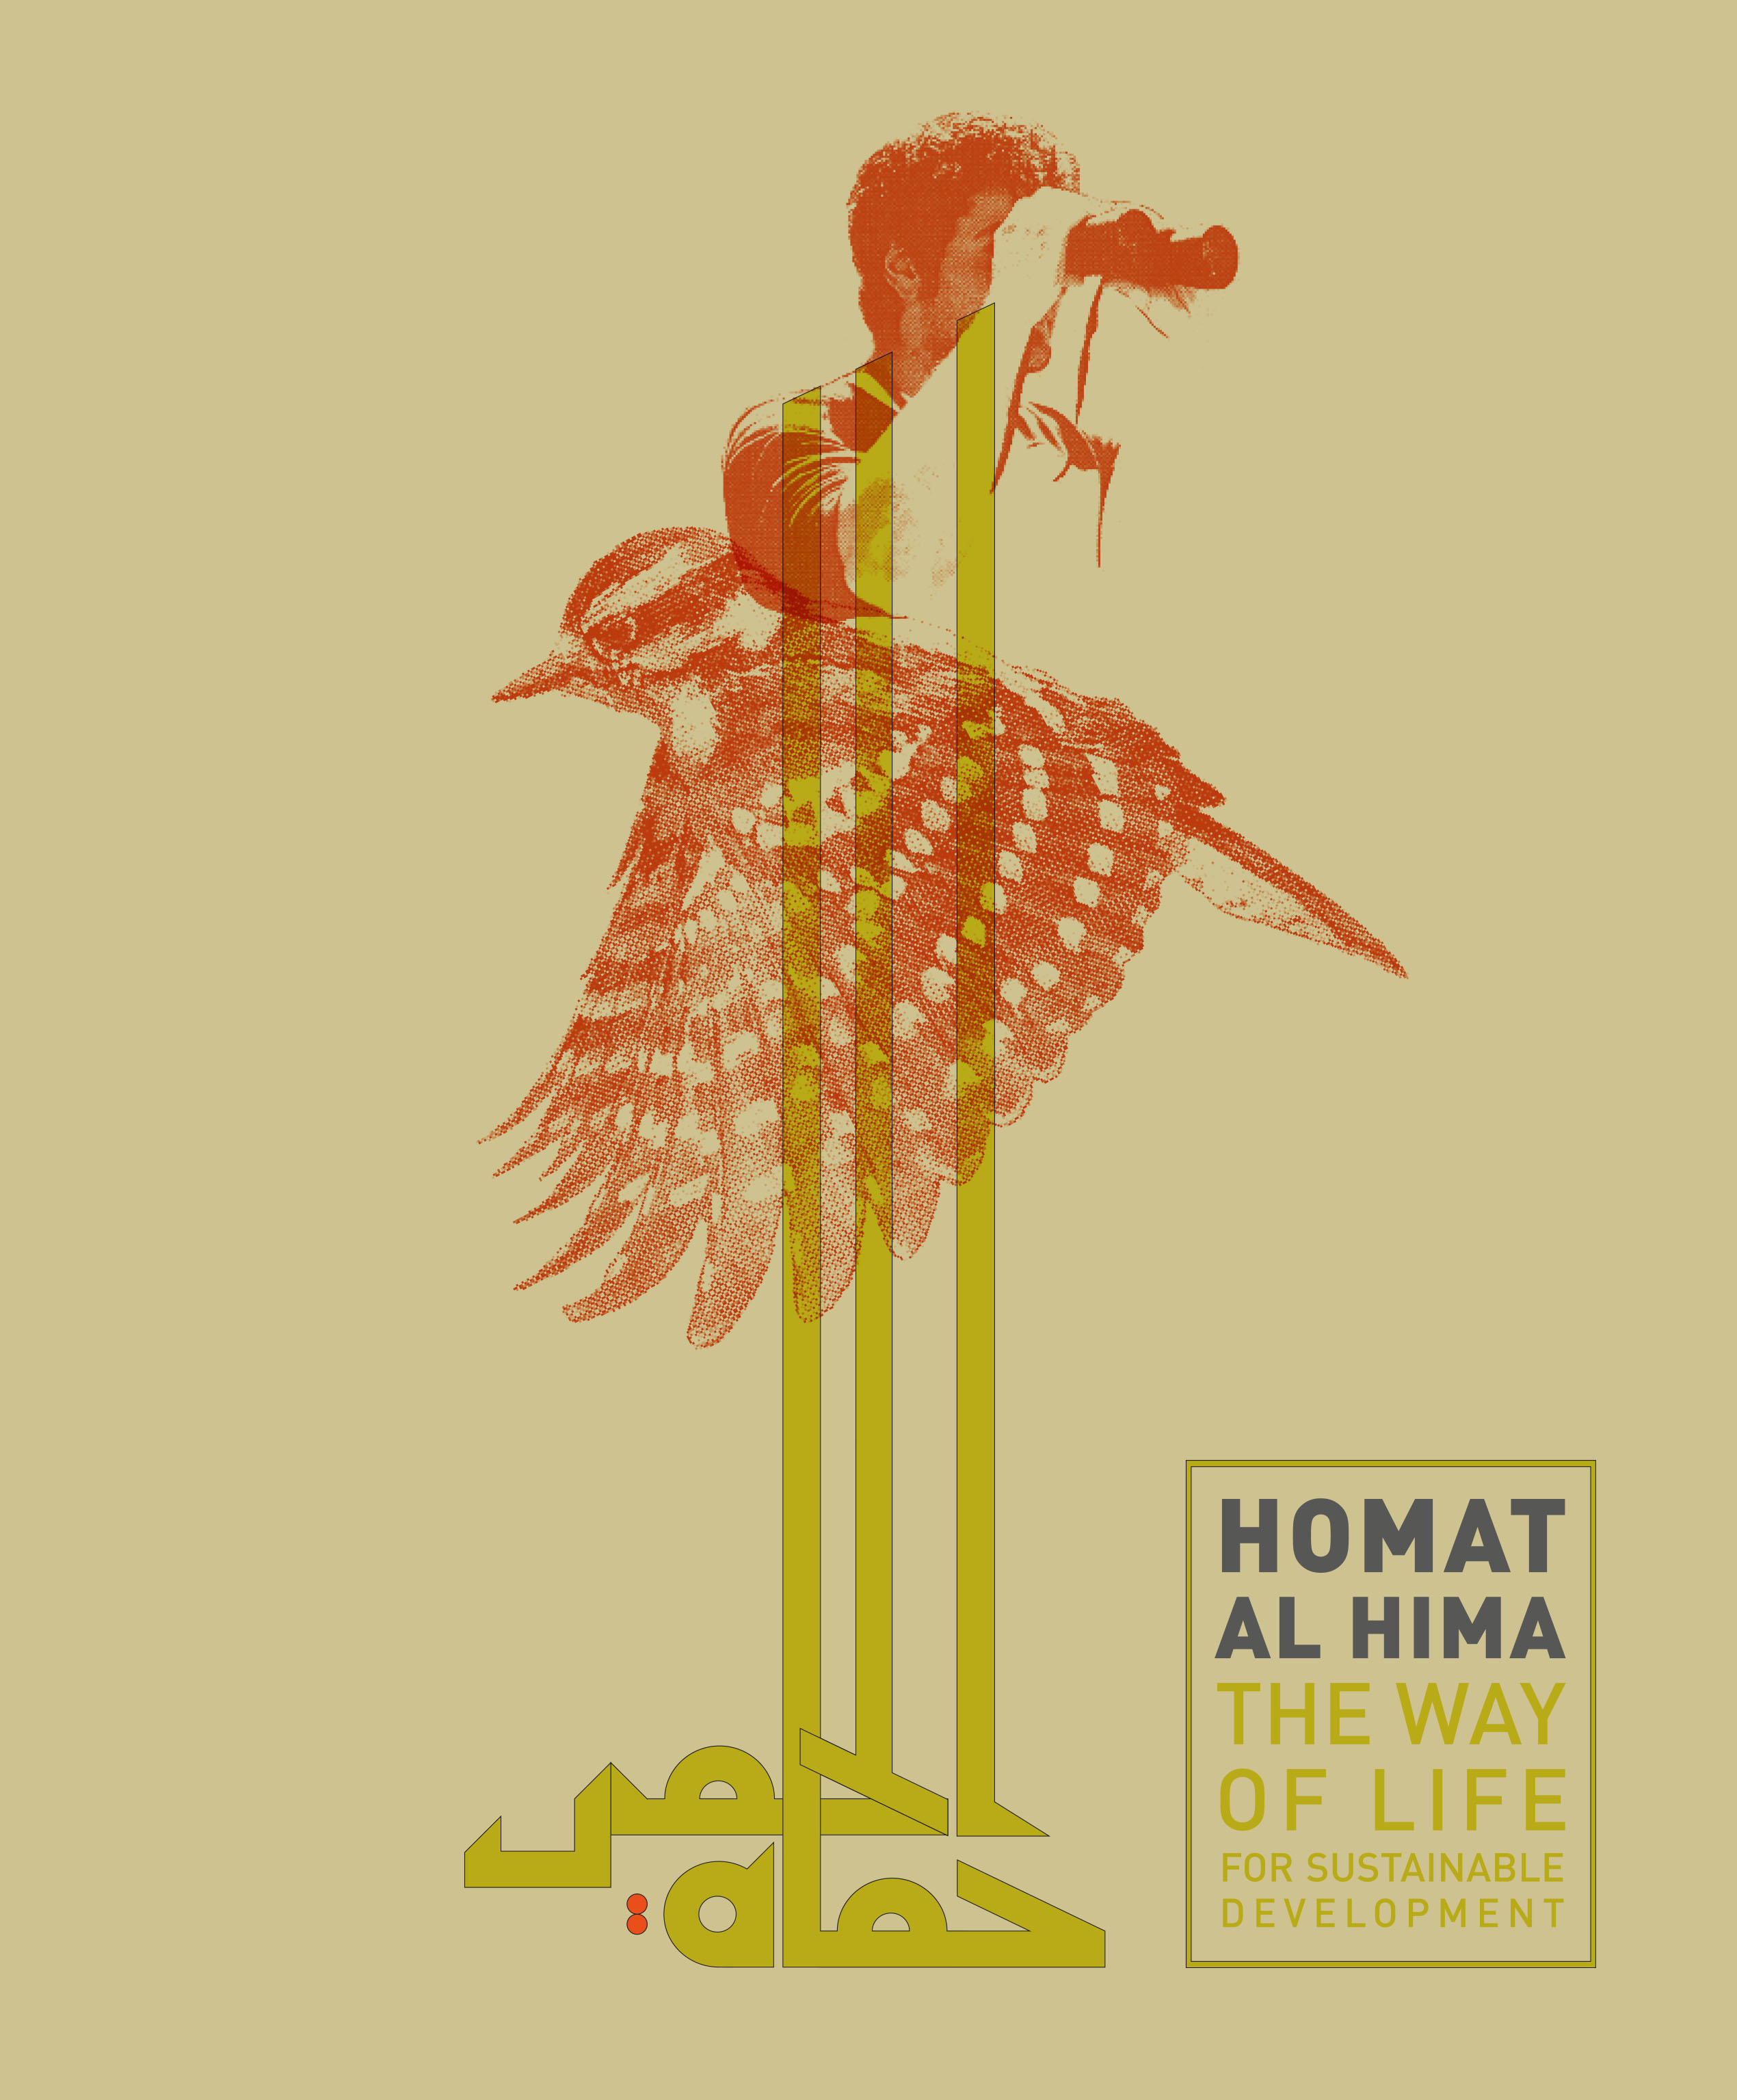 HOMAT AL-HIMA THE WAY OF LIFE, FOR SUSTAINABLE DEVELOPMENT